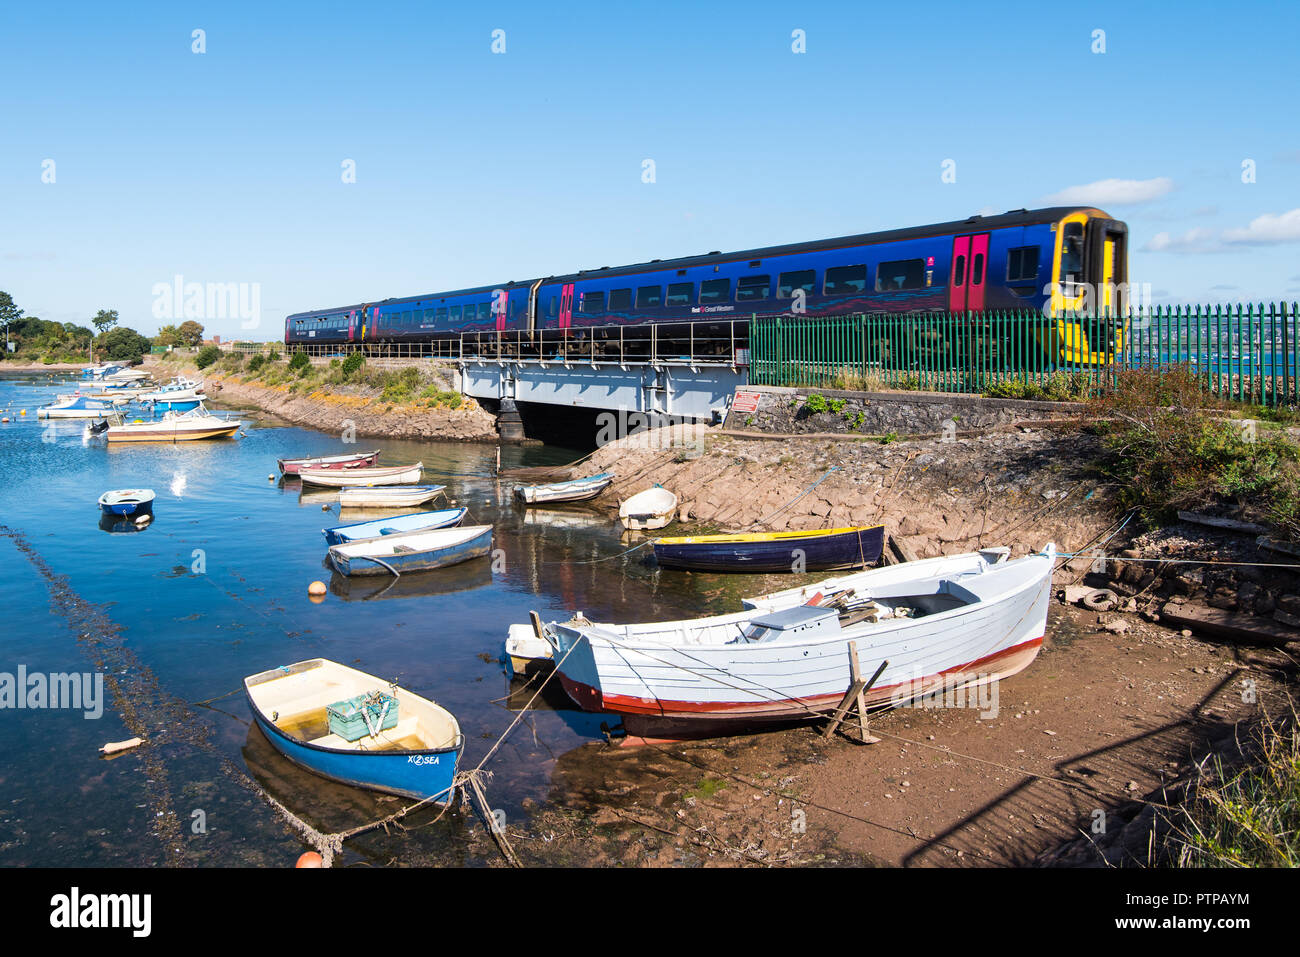 COCKWOOD, STARCROSS, DEVON, UK - 03OCT2018: First Great Western class 158 Express Sprinter train 158763 passes the harbour at Cockwood on the Exe Estu - Stock Image